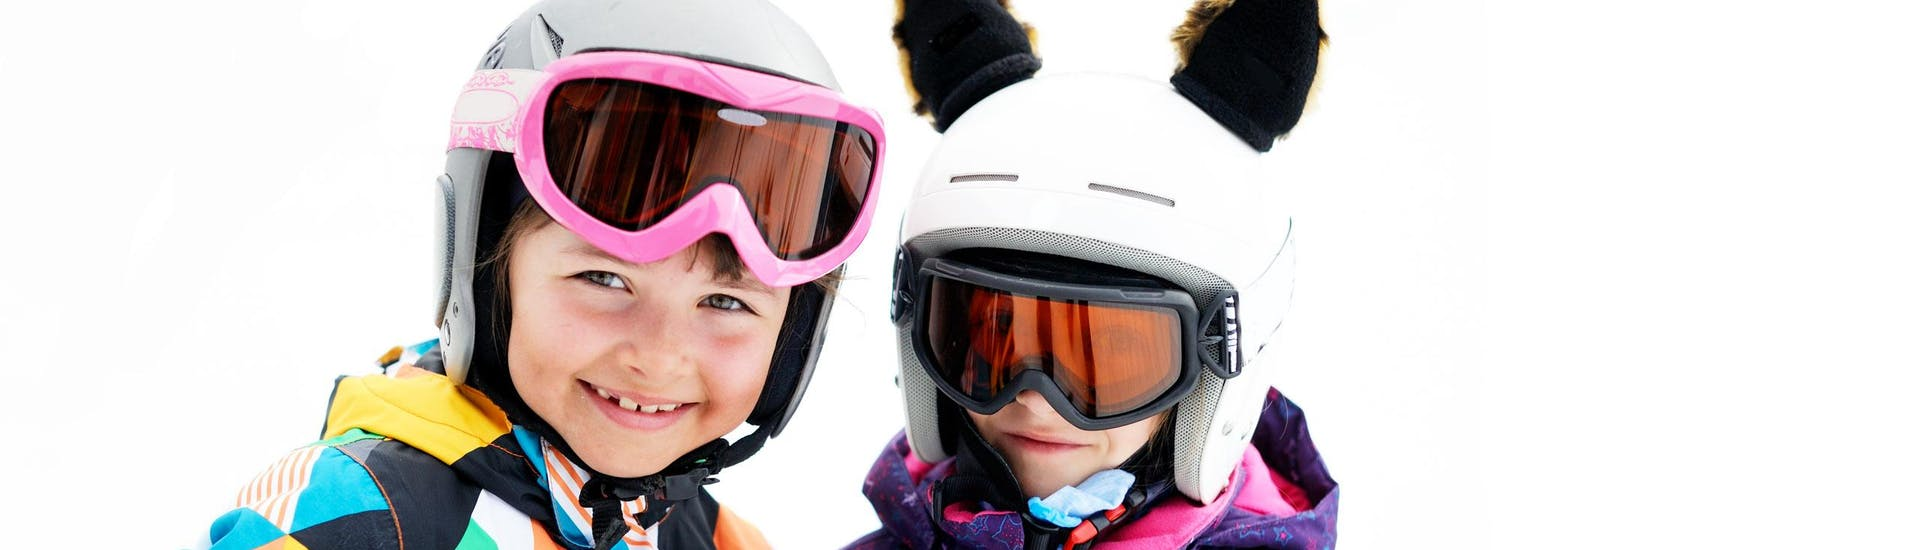 Two young children smiling at the camera during one of the Kids Ski Lessons (5-14 y.) for all Levels - Full-Day organised by Skischule Mösern - Seefeld.